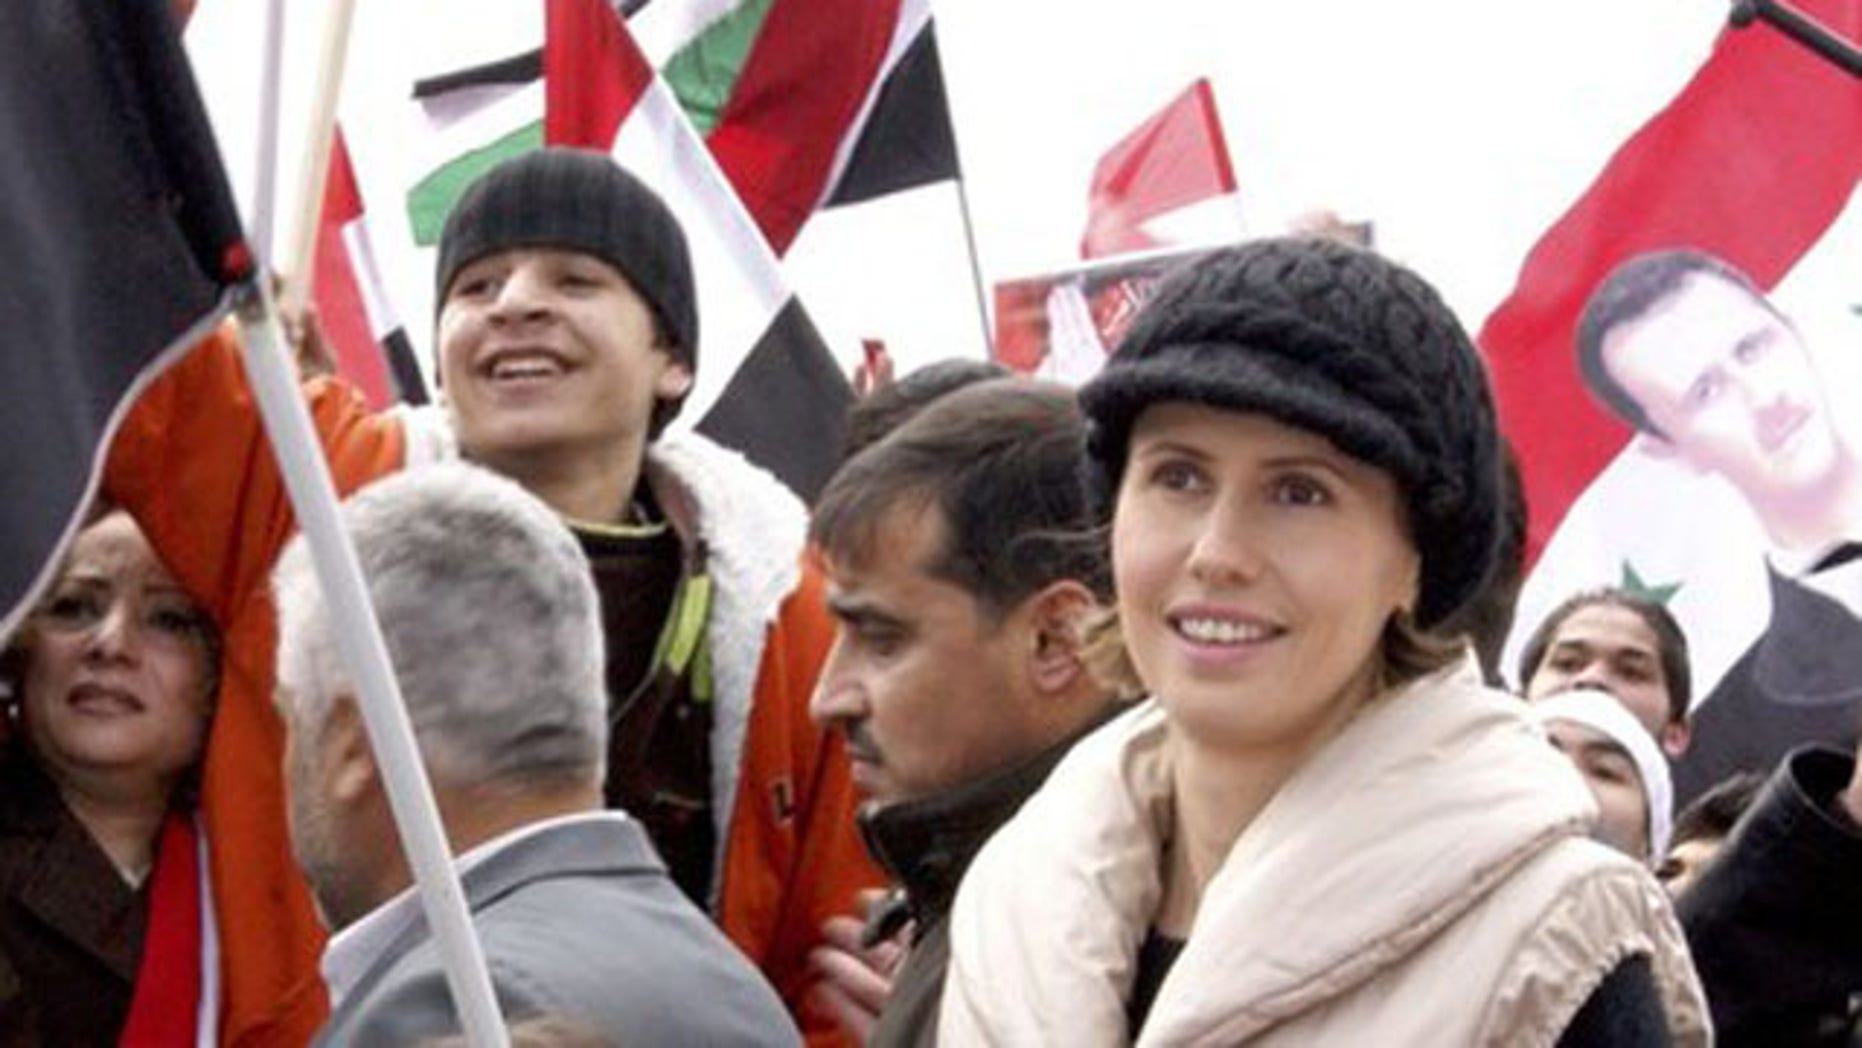 Jan. 11, 2012: Asma, the wife of Syrian President Bashar al-Assad, makes an appearance during a rally in support of her husband in Damascus.